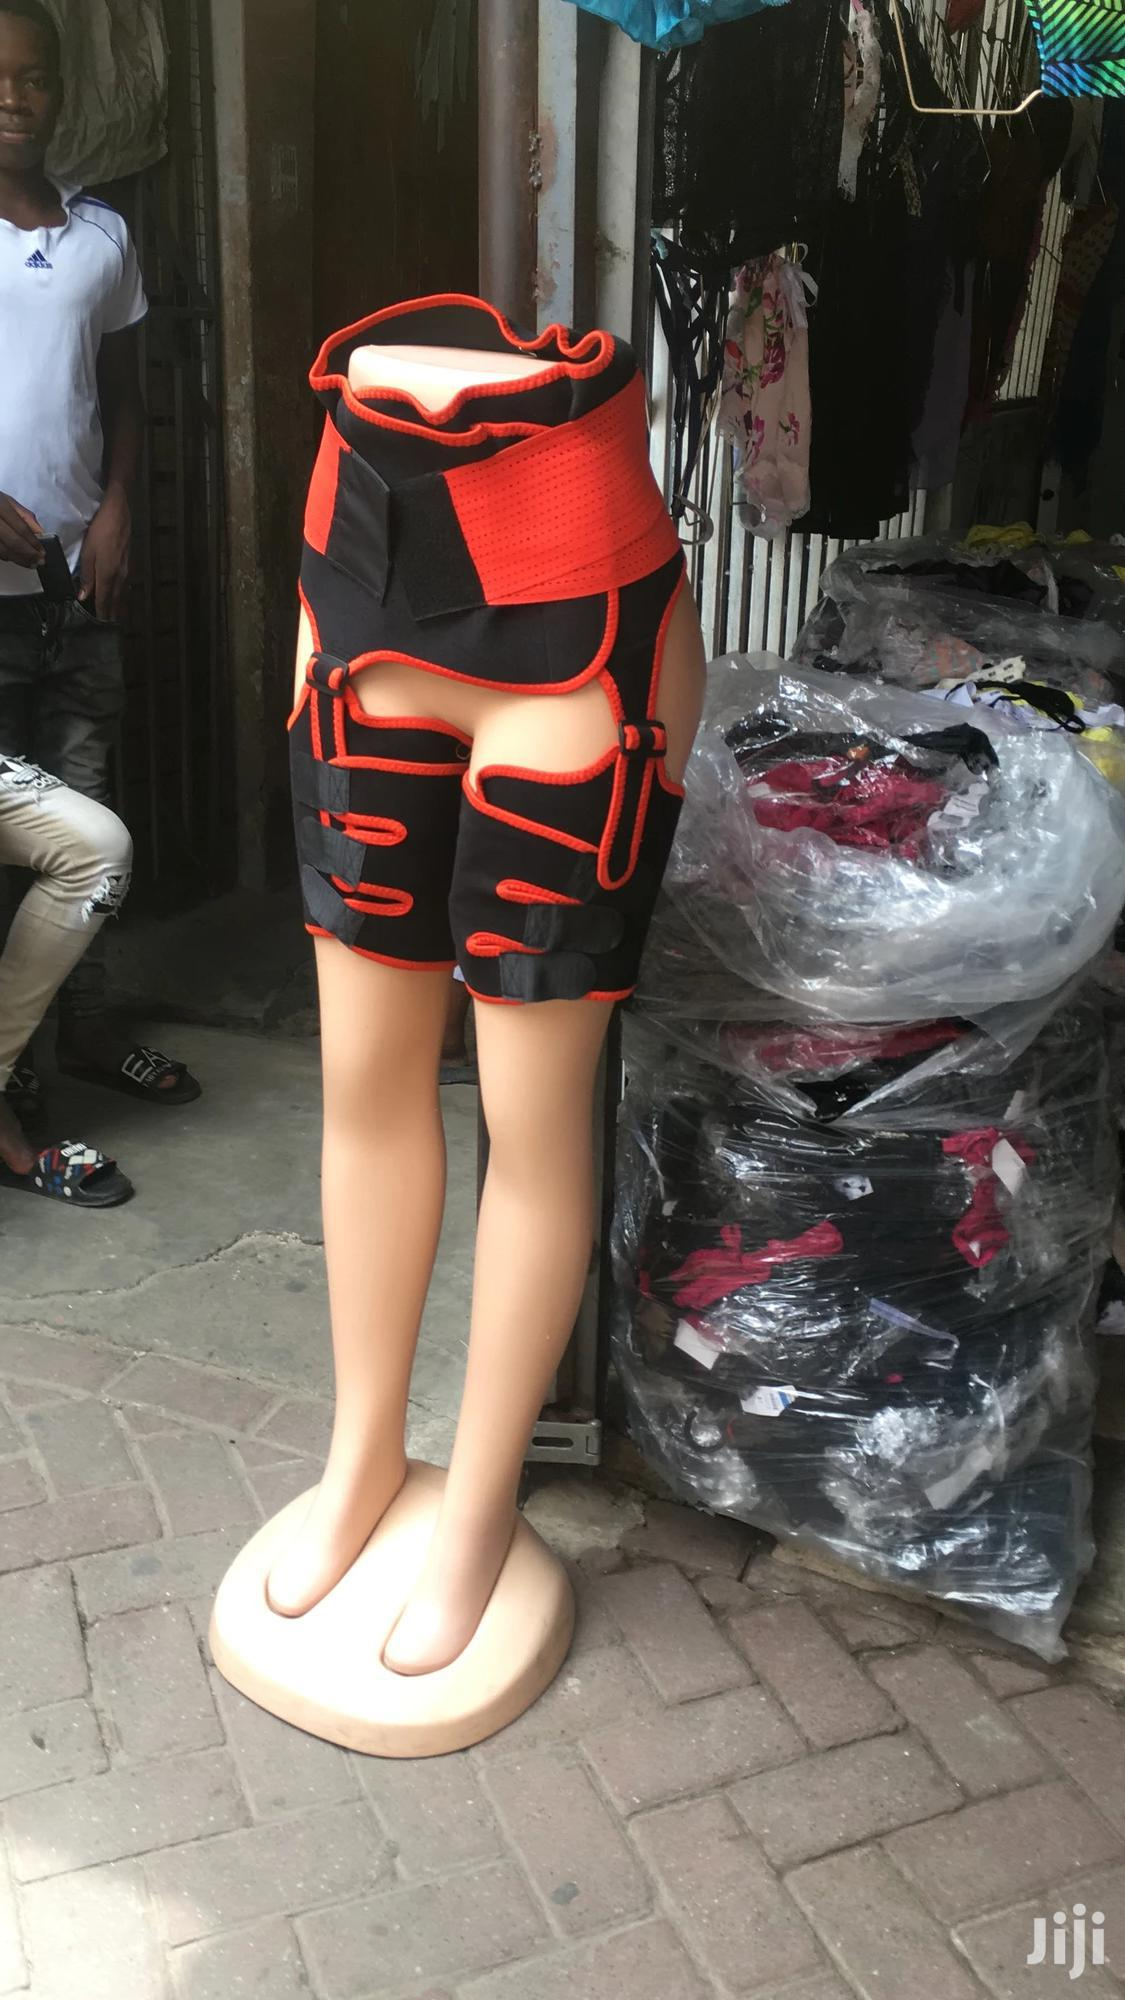 Waist And Hip Trainer | Tools & Accessories for sale in Dansoman, Greater Accra, Ghana